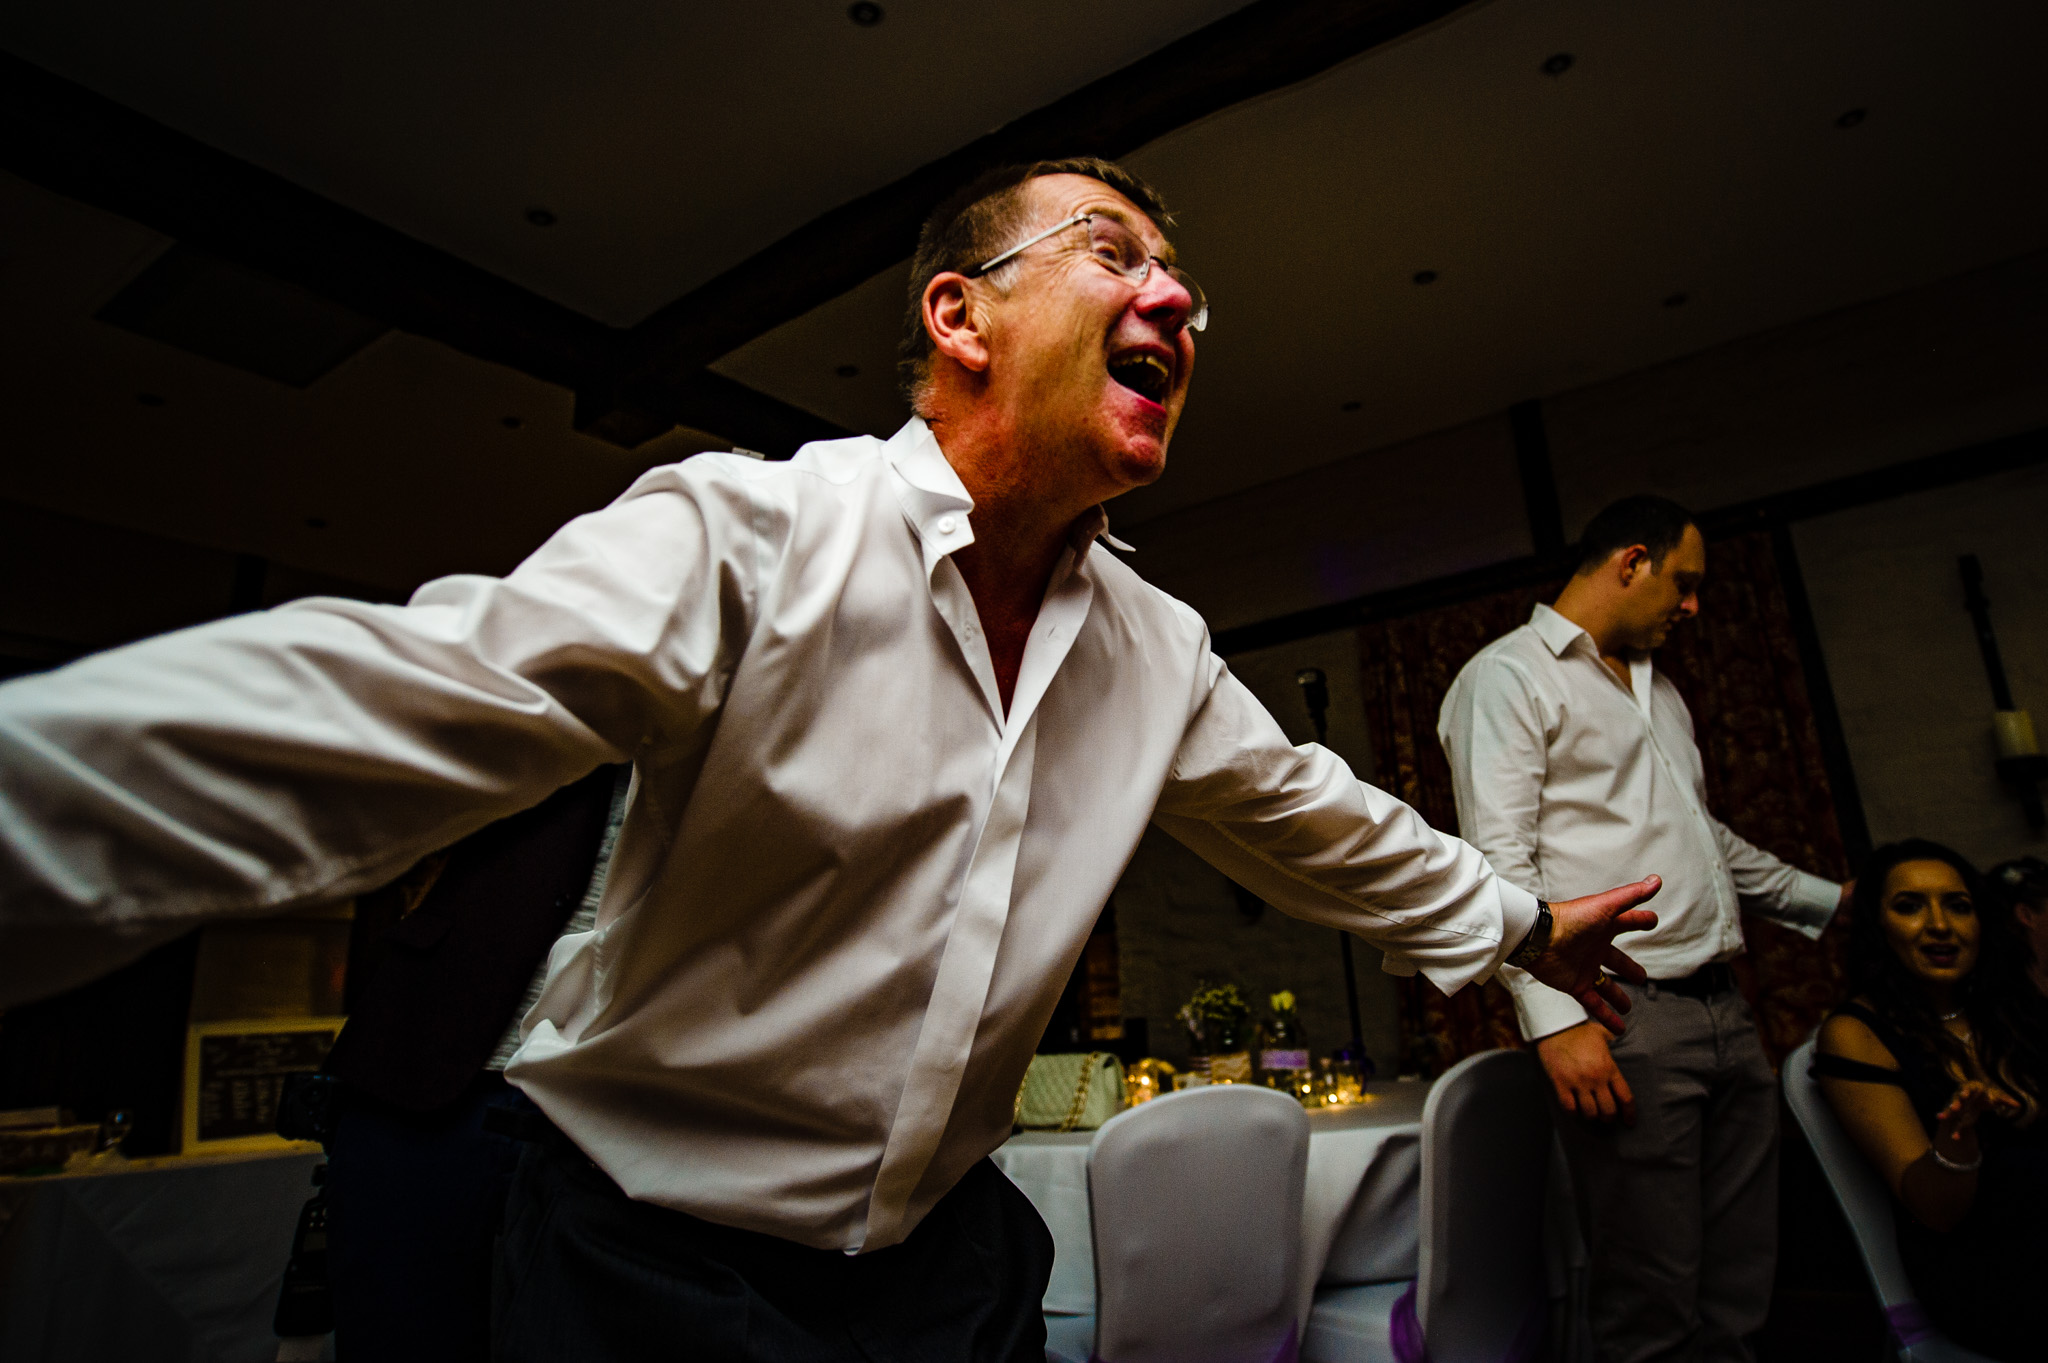 Father of the bride throws some moves